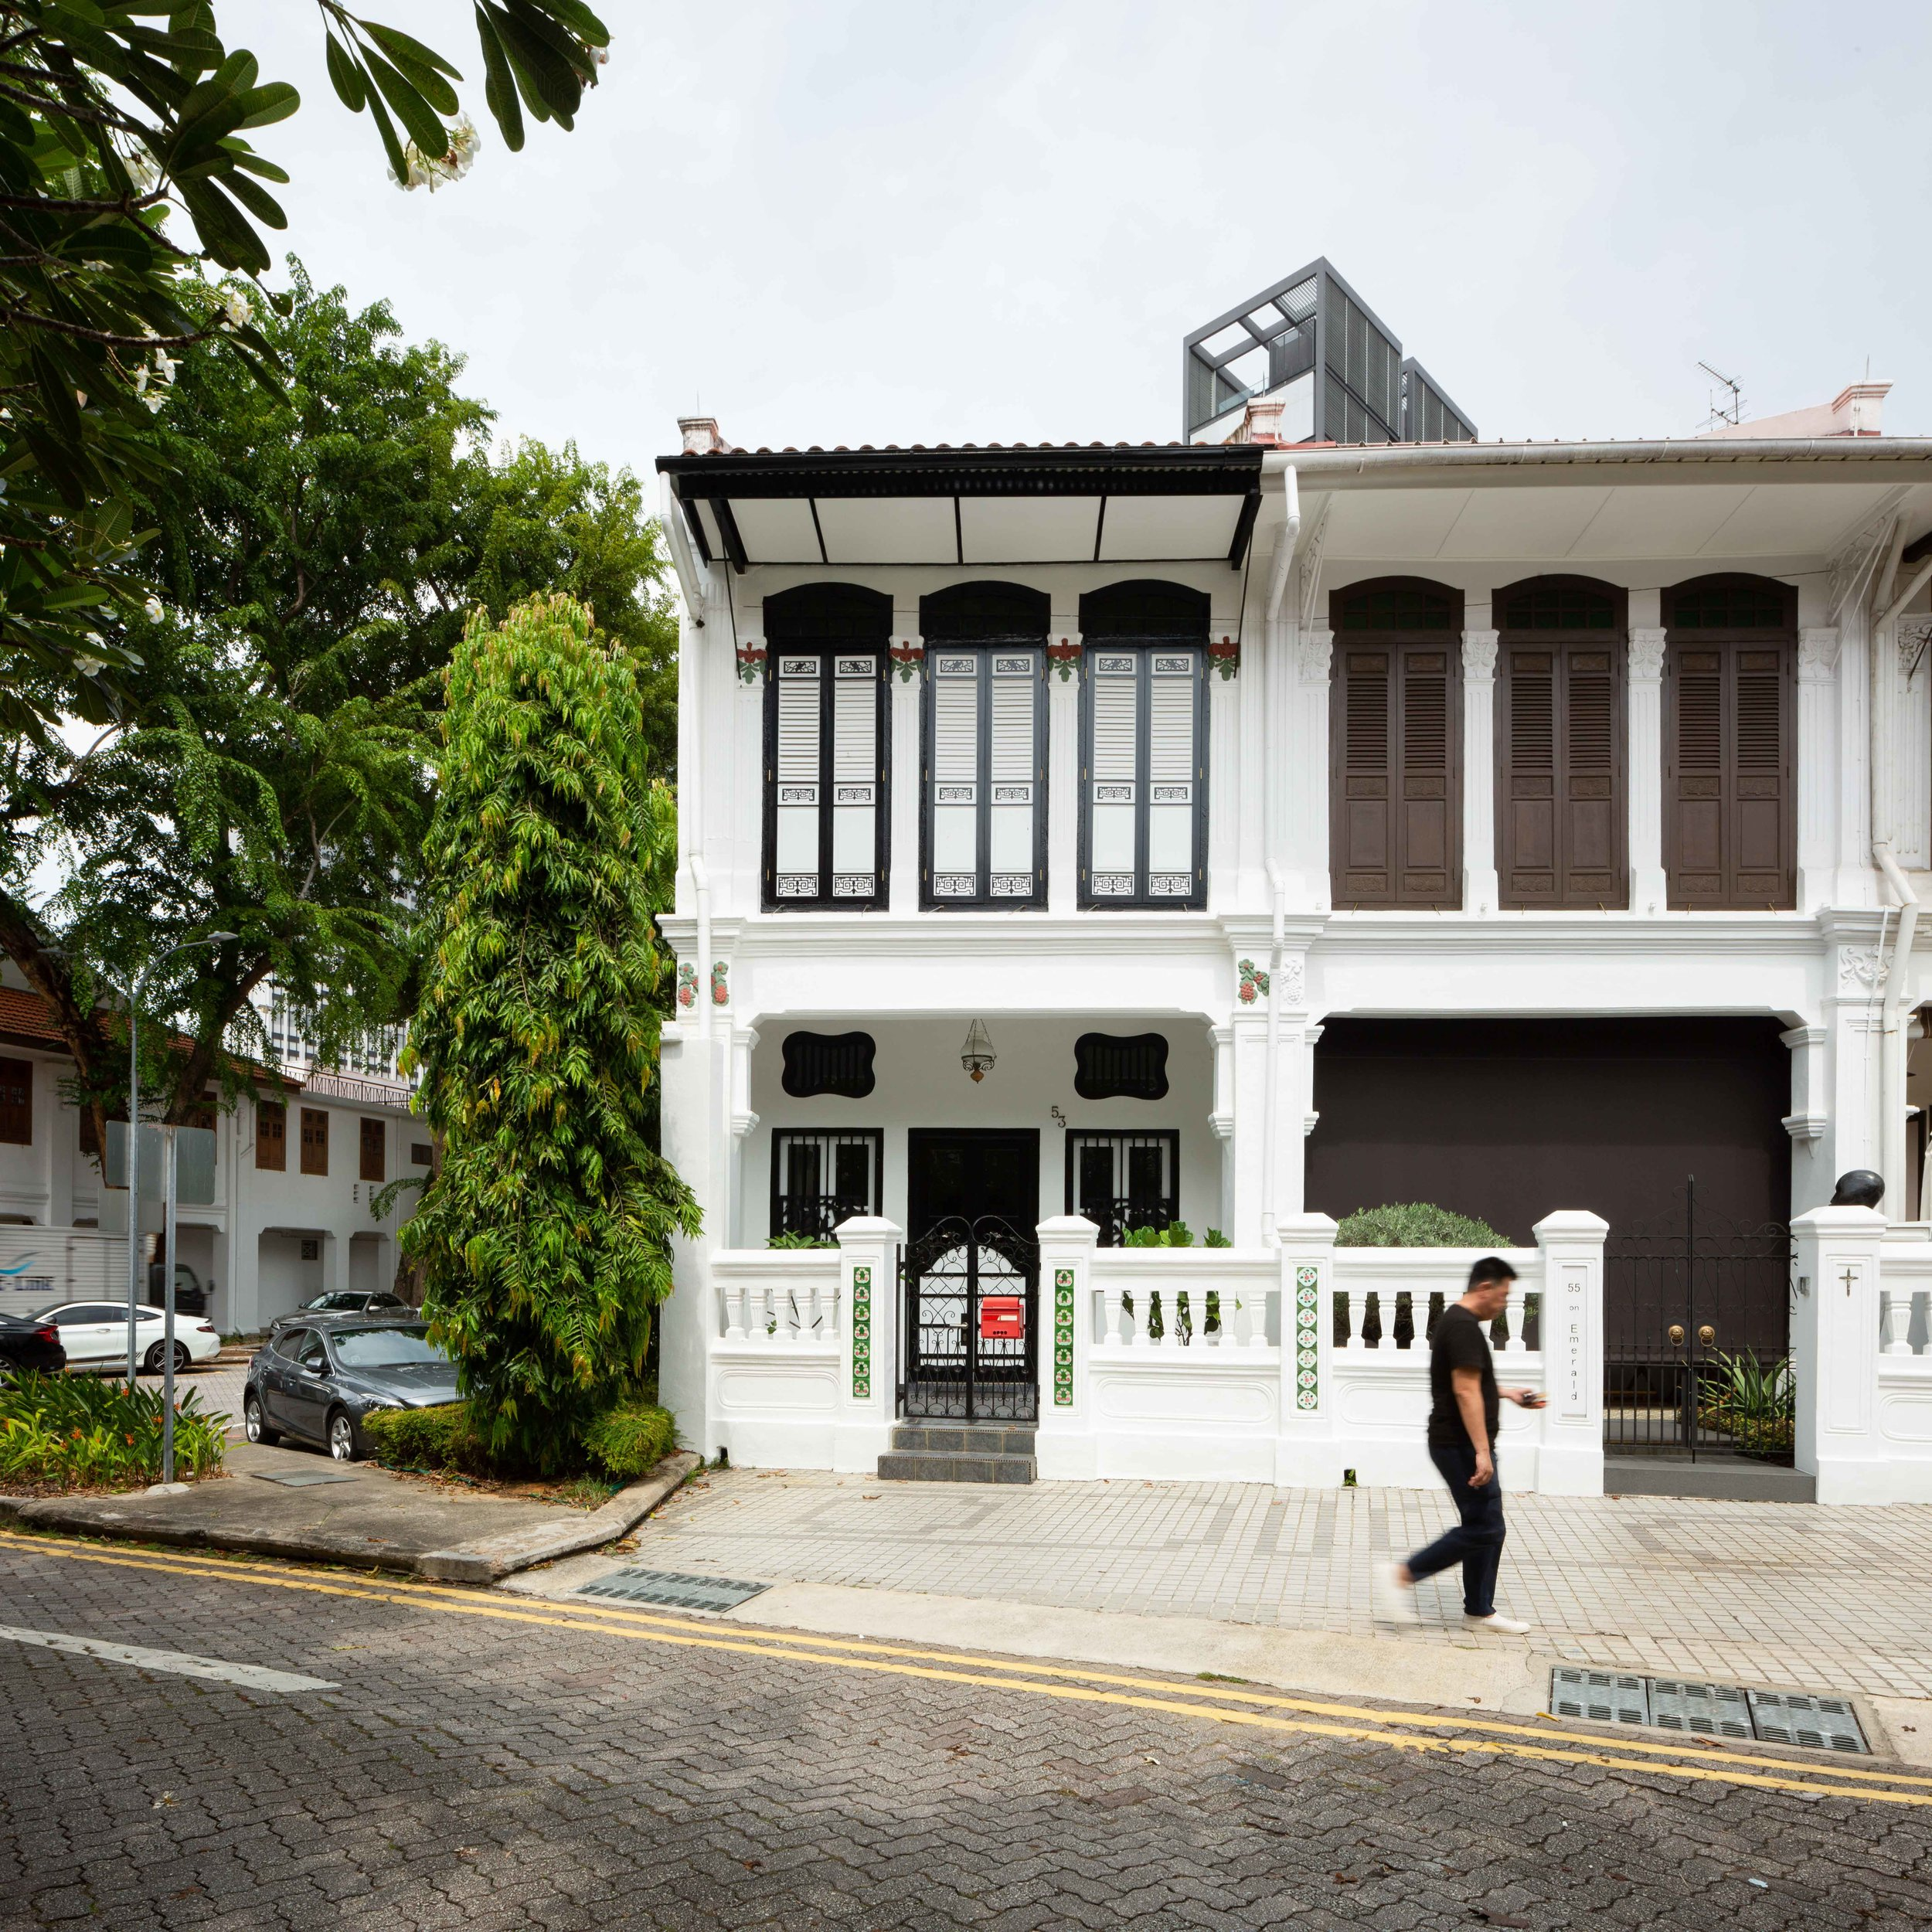 A shophouse along Emerald Hill, designed by R.T. Rajoo and developed by Low Koon Yee in 1924